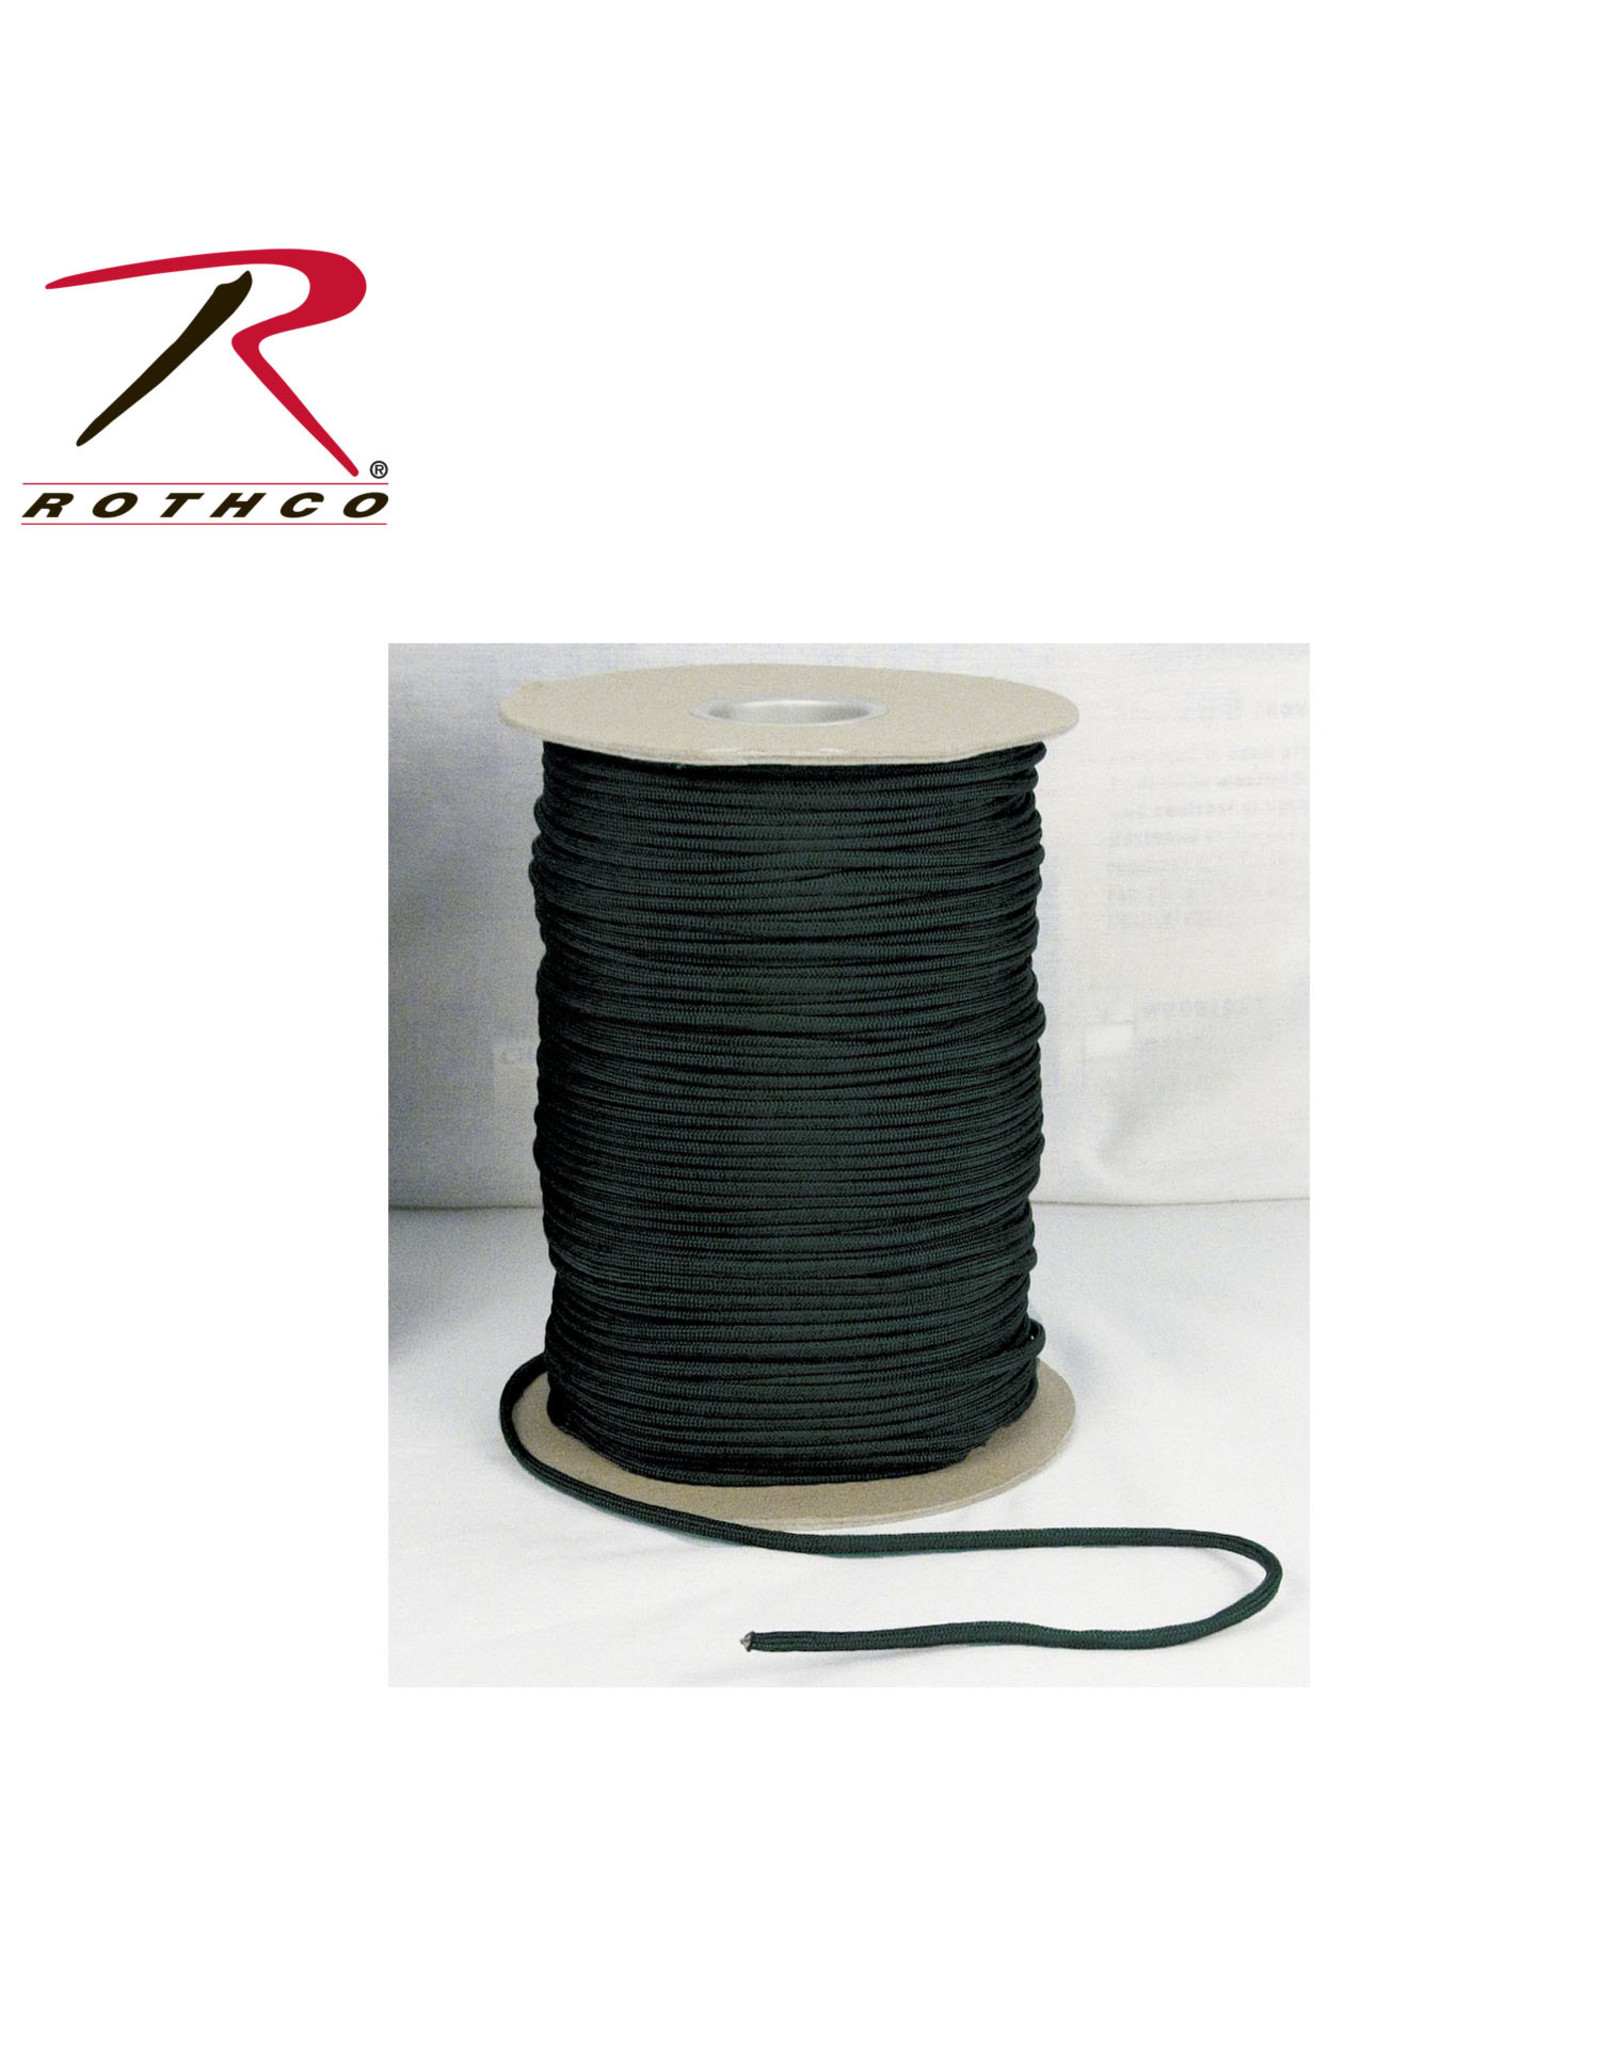 Rothco 550 Paracord - Multiple Colors